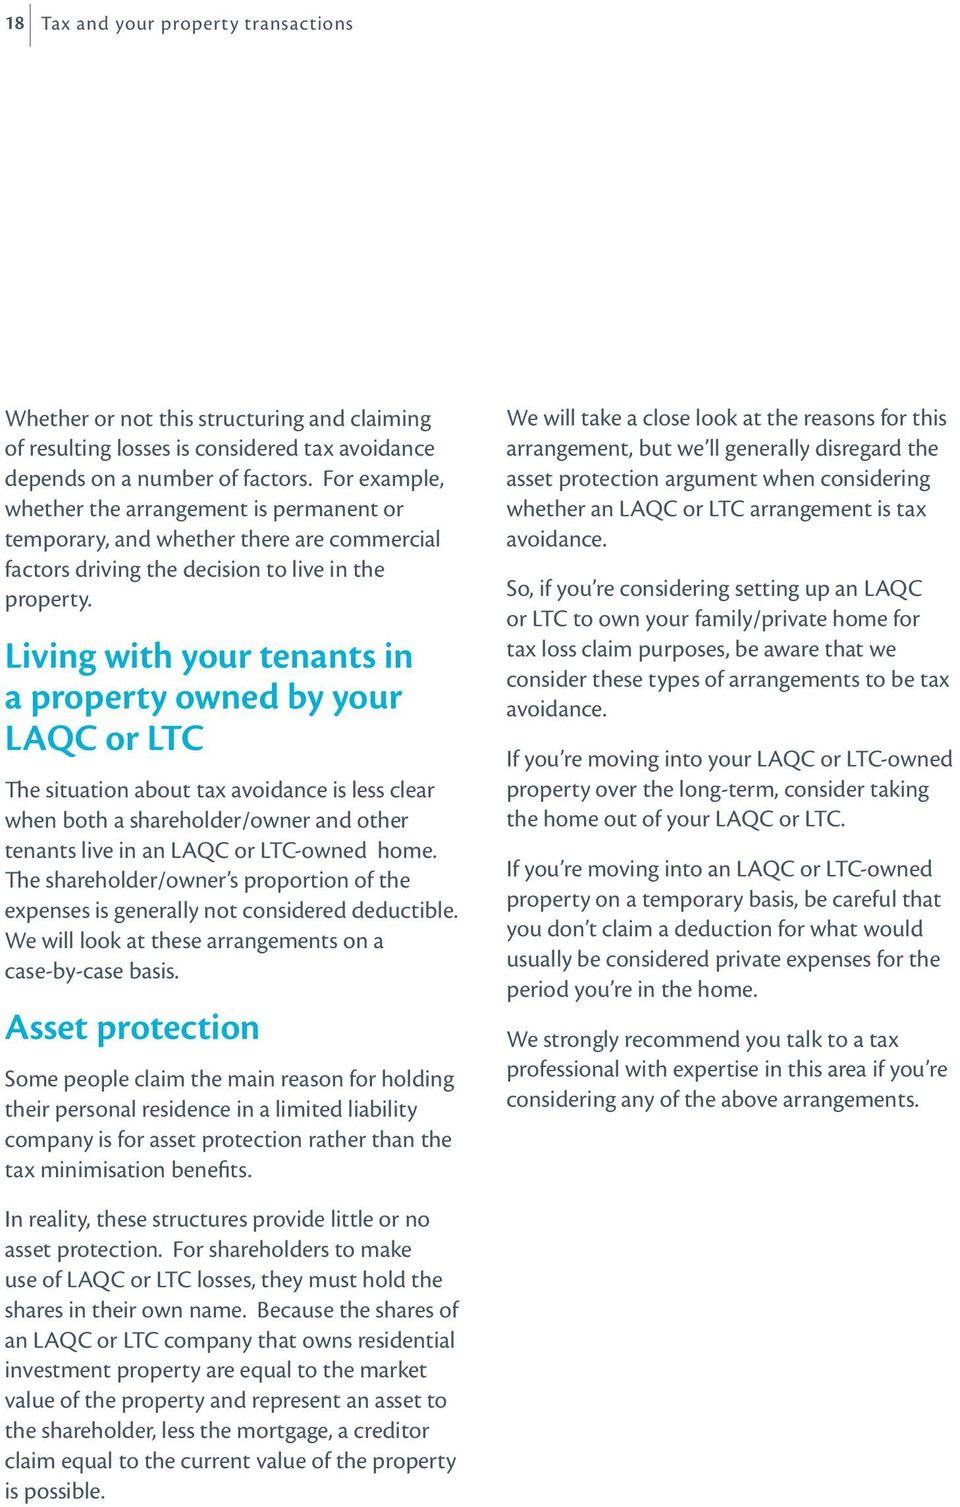 Living with your tenants in a property owned by your LAQC or LTC The situation about tax avoidance is less clear when both a shareholder/owner and other tenants live in an LAQC or LTC-owned home.